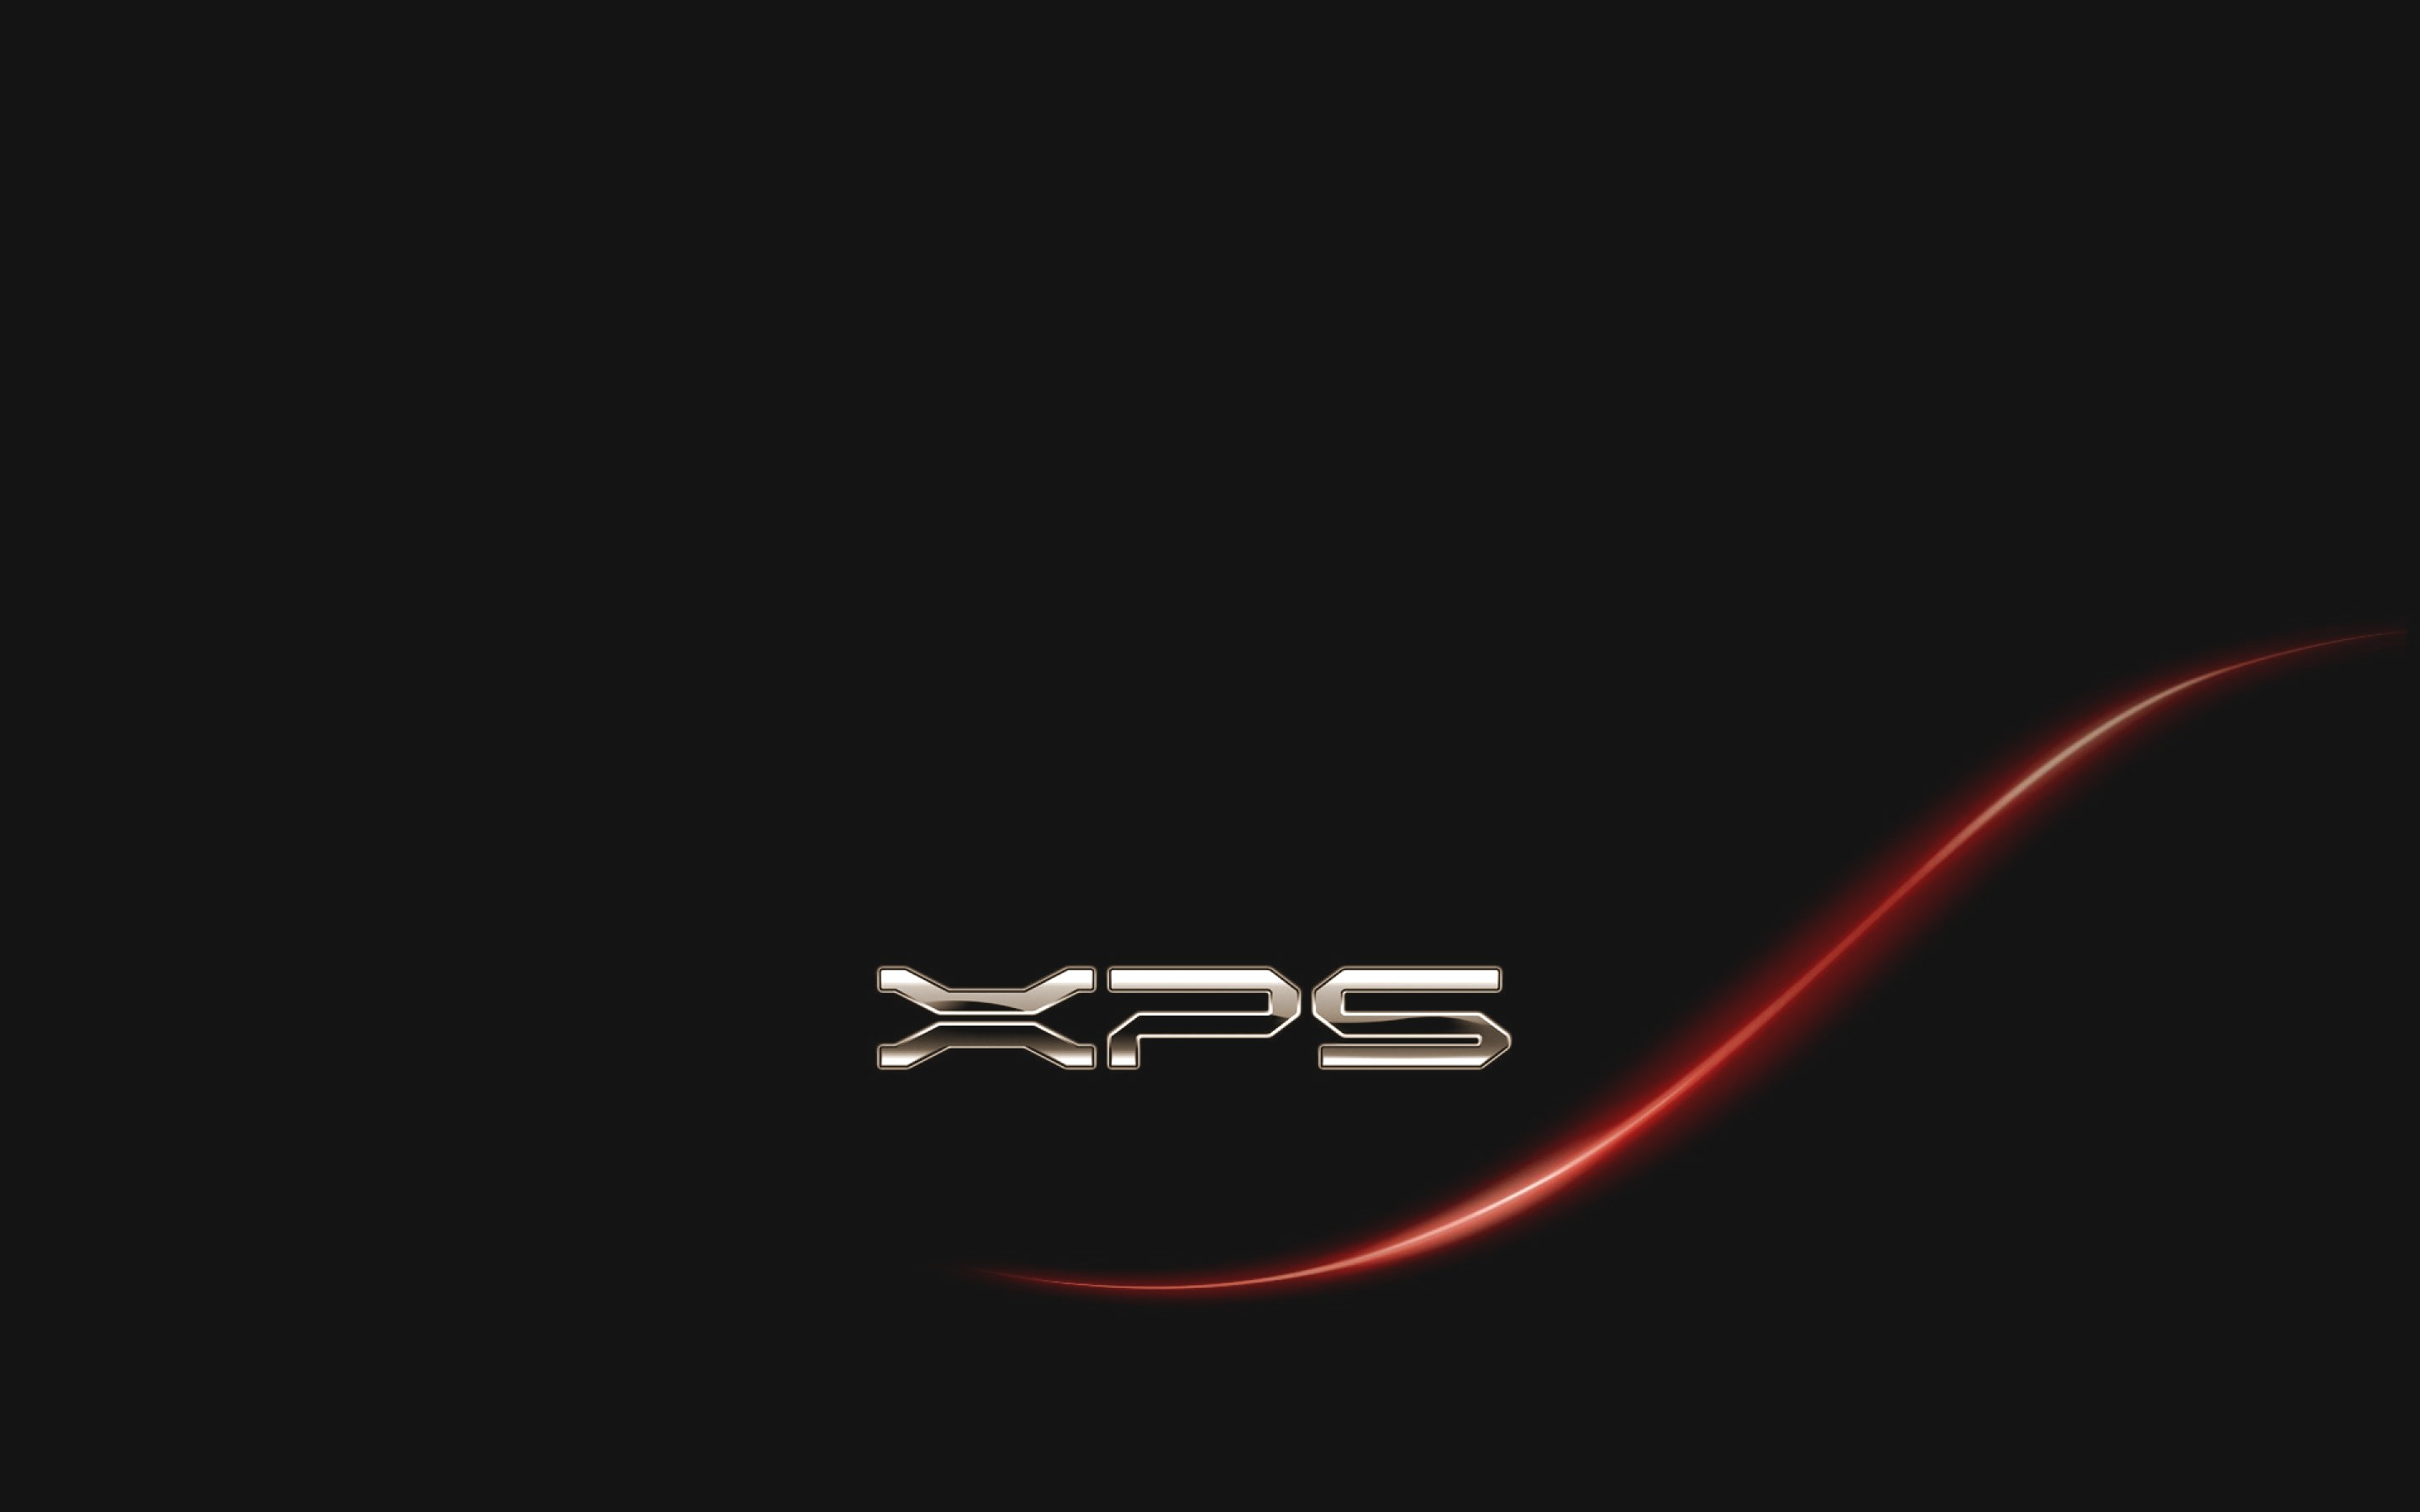 Dell Xps wallpaper   1051994 2880x1800